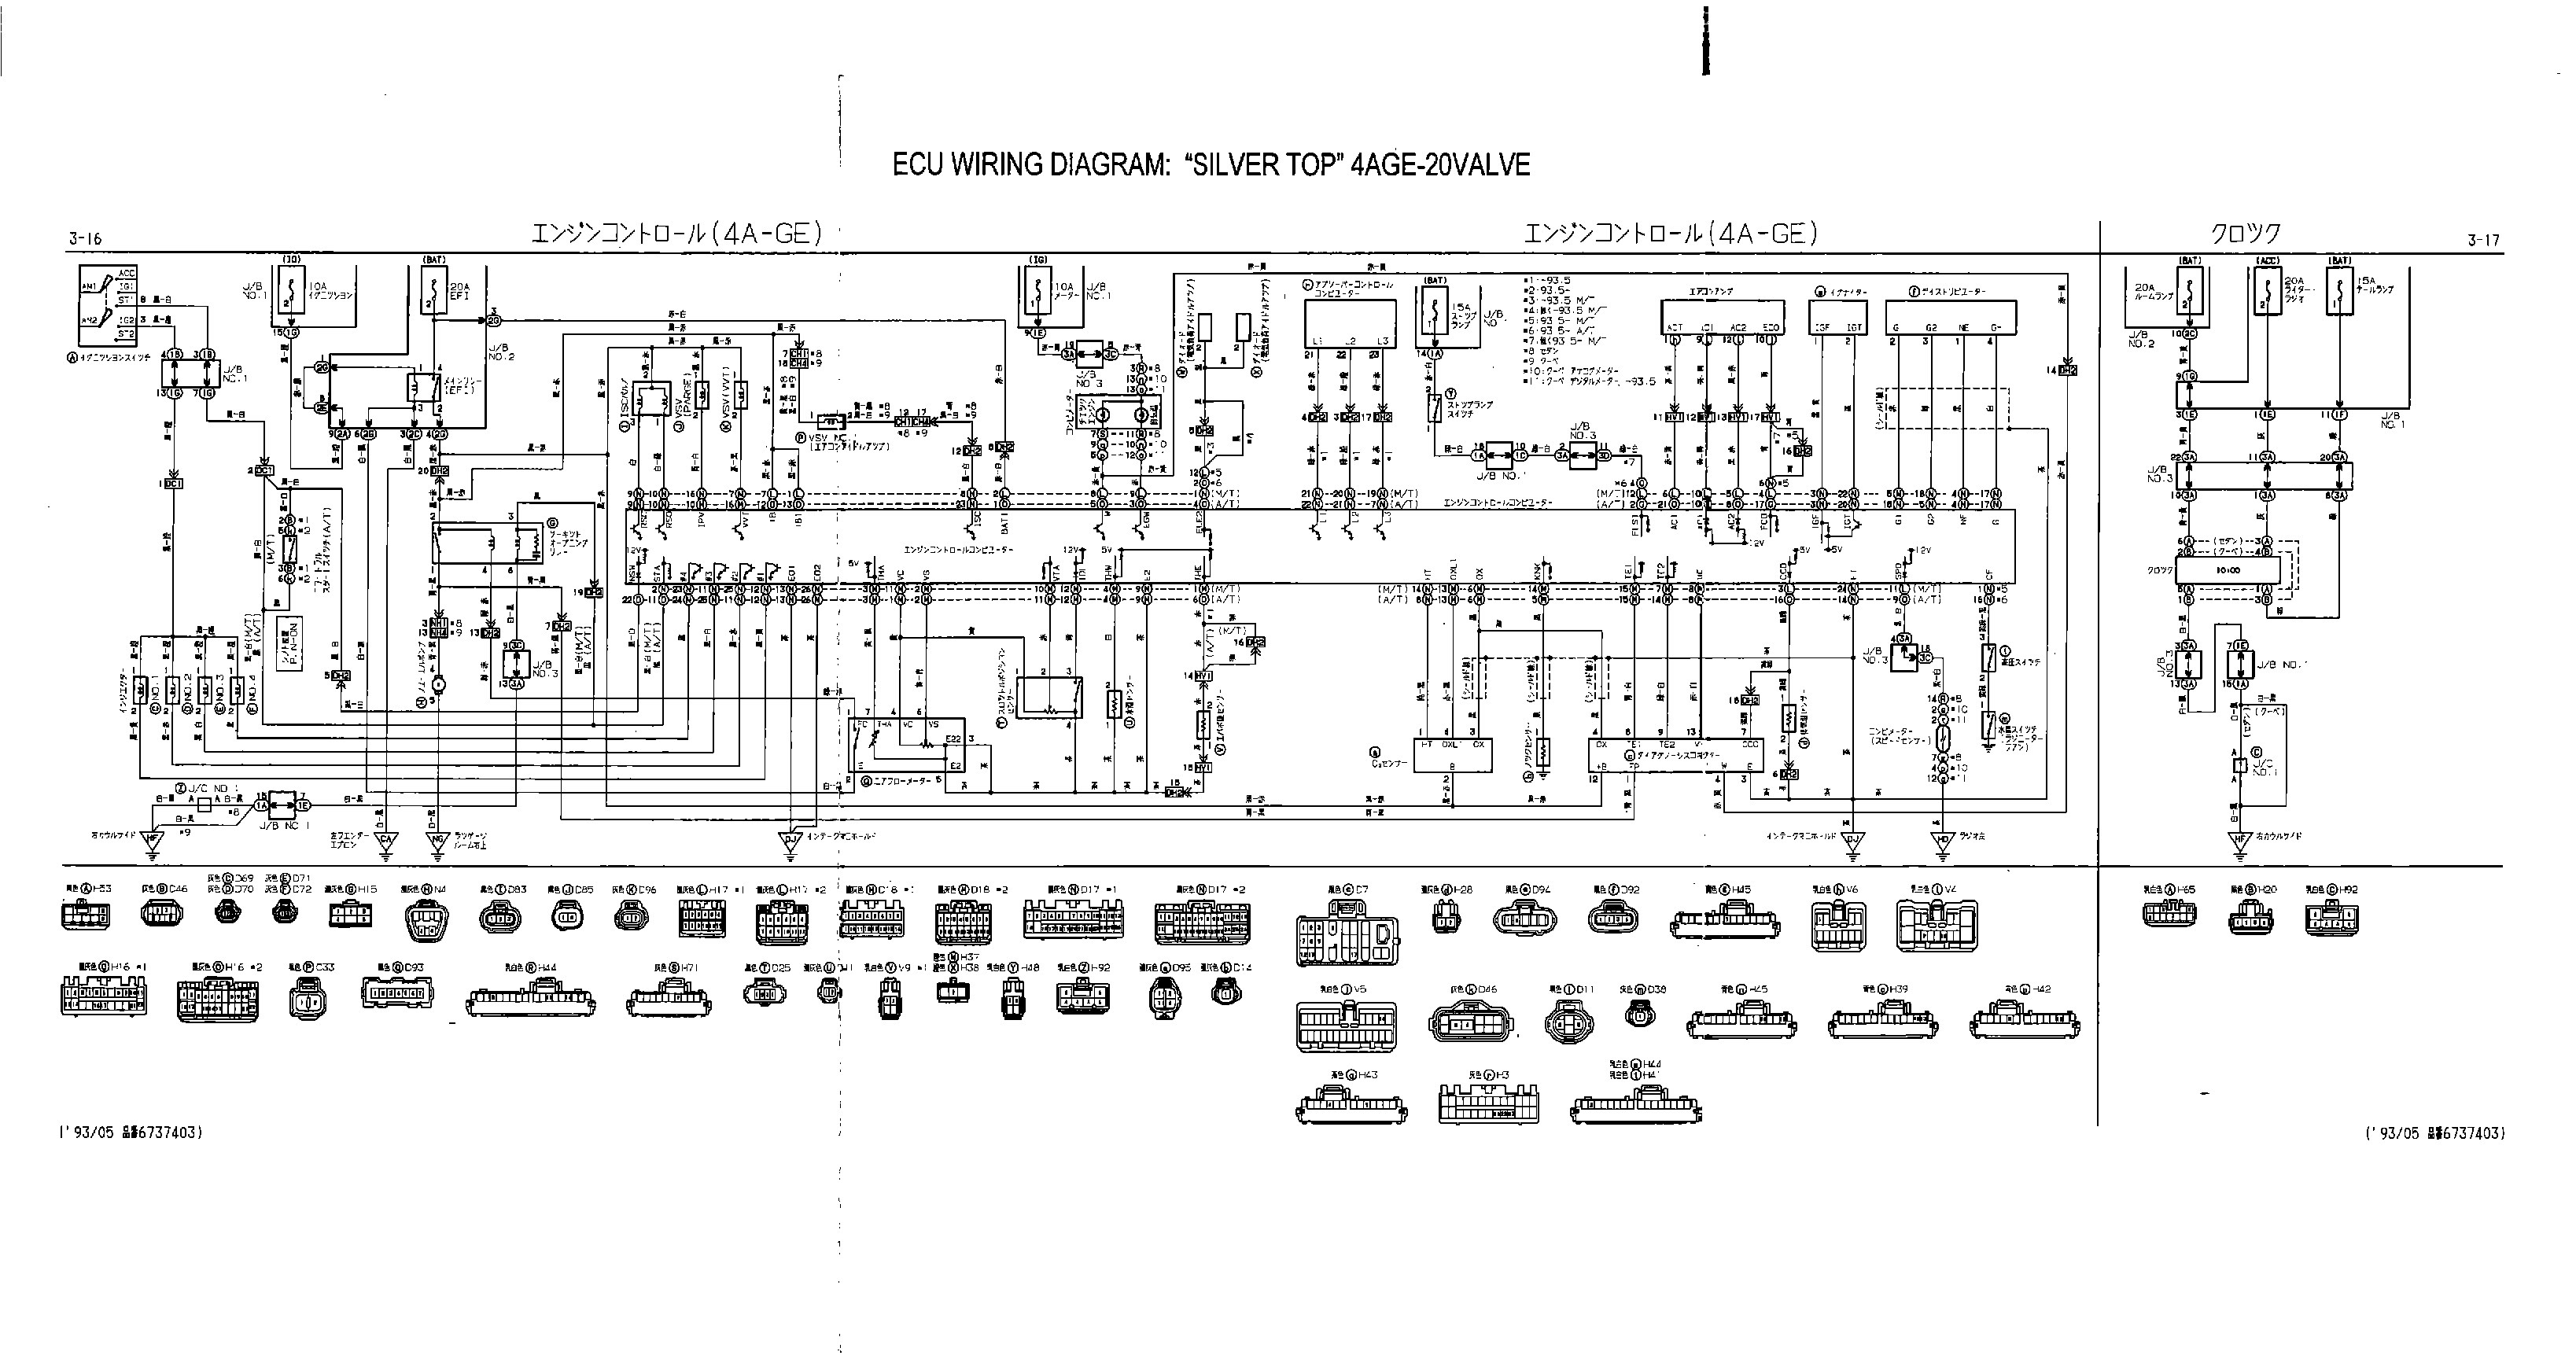 toyota ae111 wiring diagram what are data flow 4age 20v blacktop ecu 36